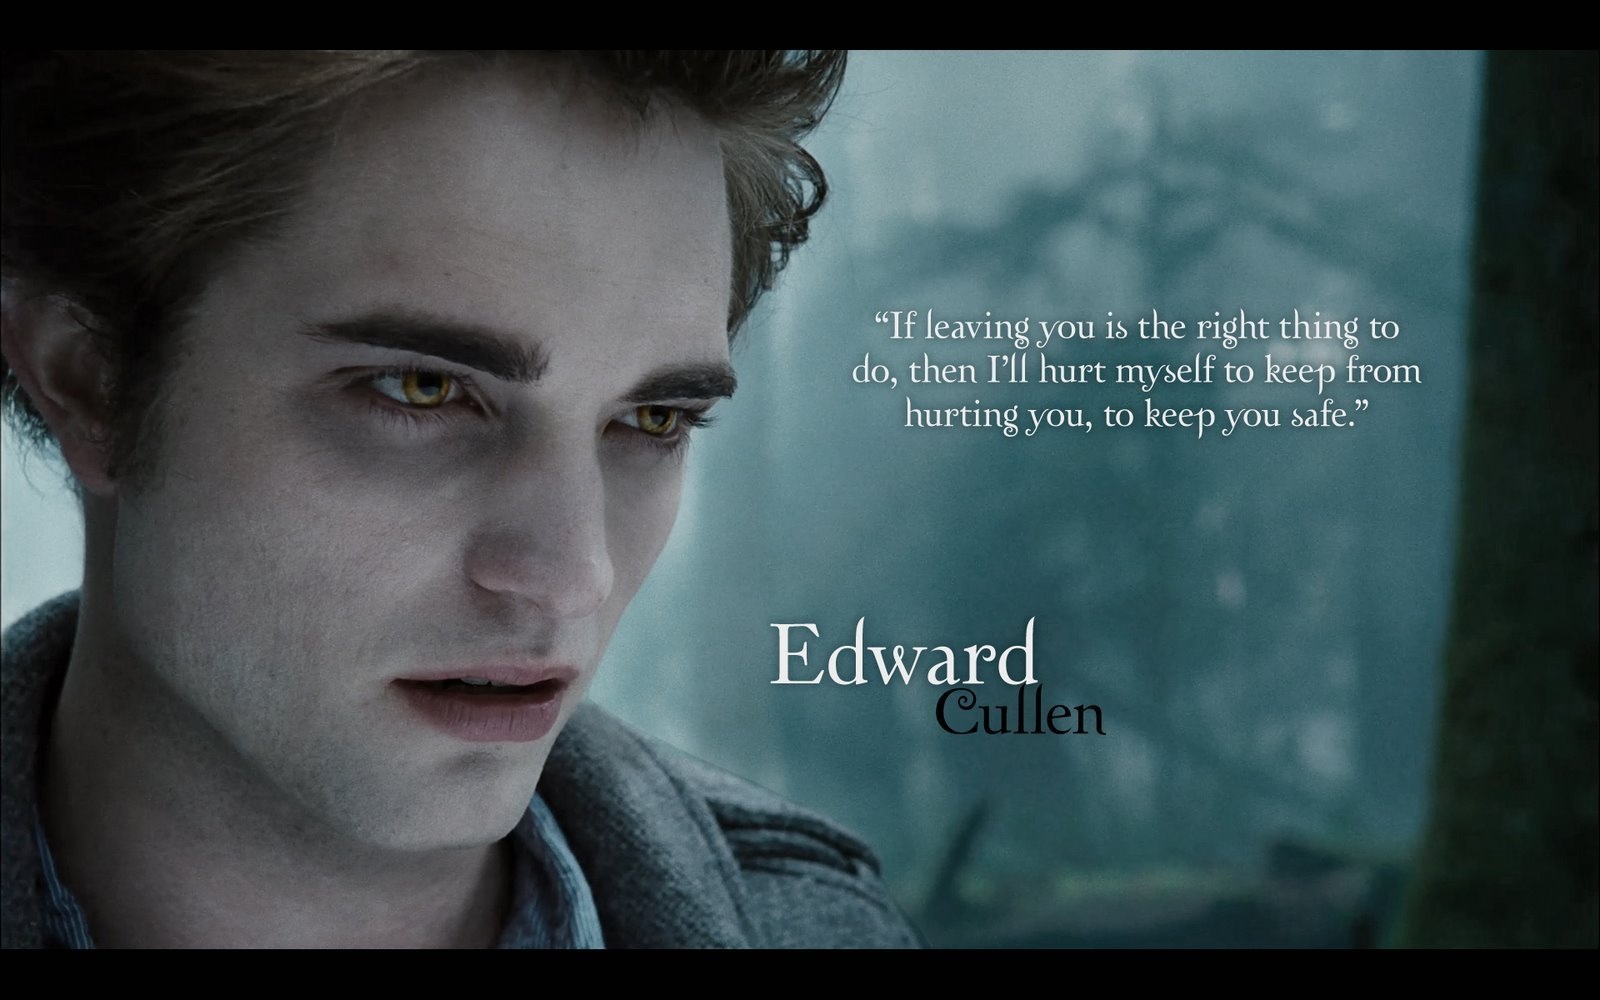 Pics For Edward Cullen Quotes From Twilight